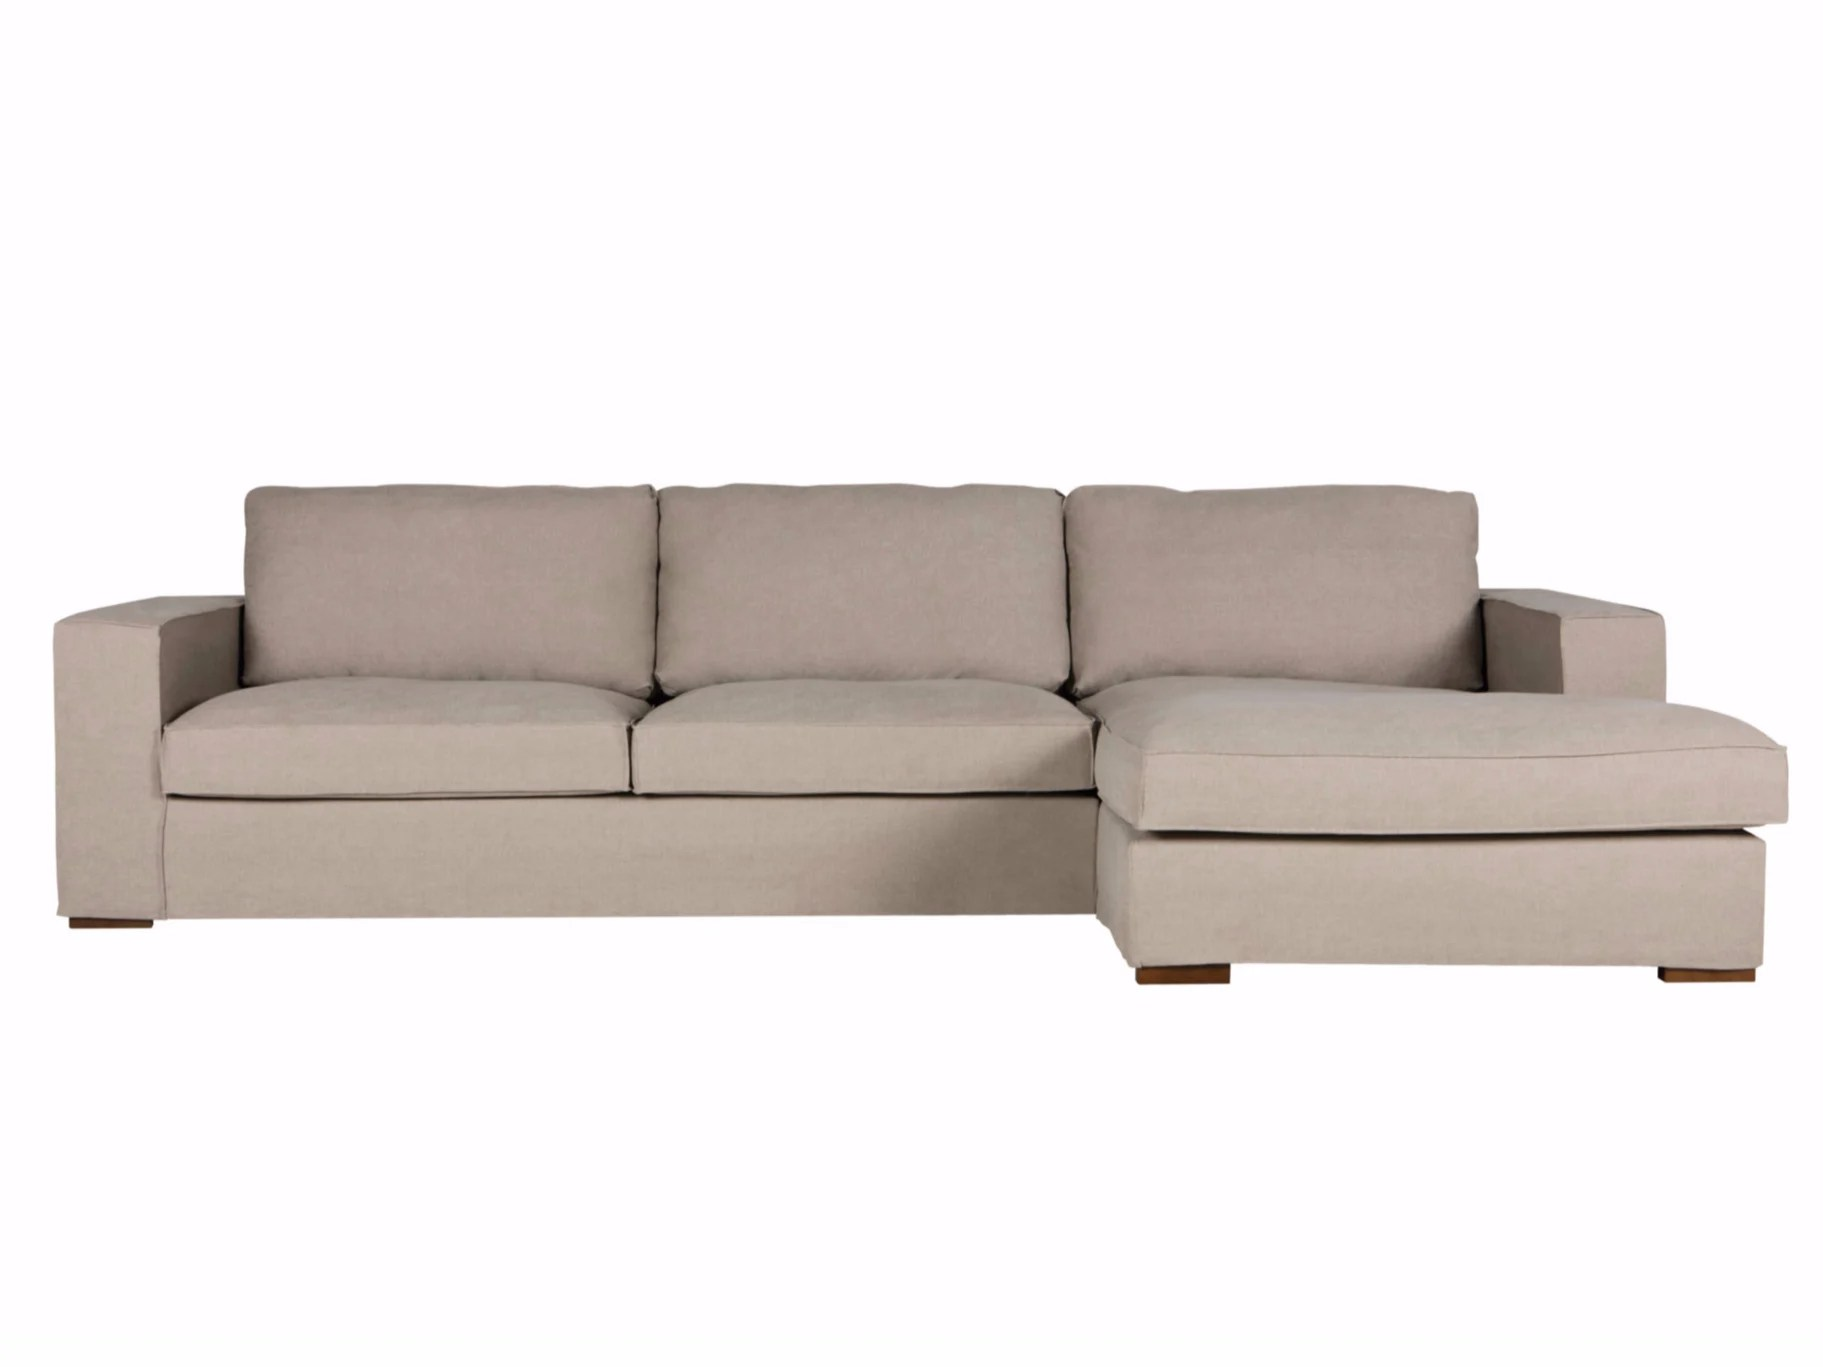 chaise longue fabric sofa axis ii review abbe with by sits